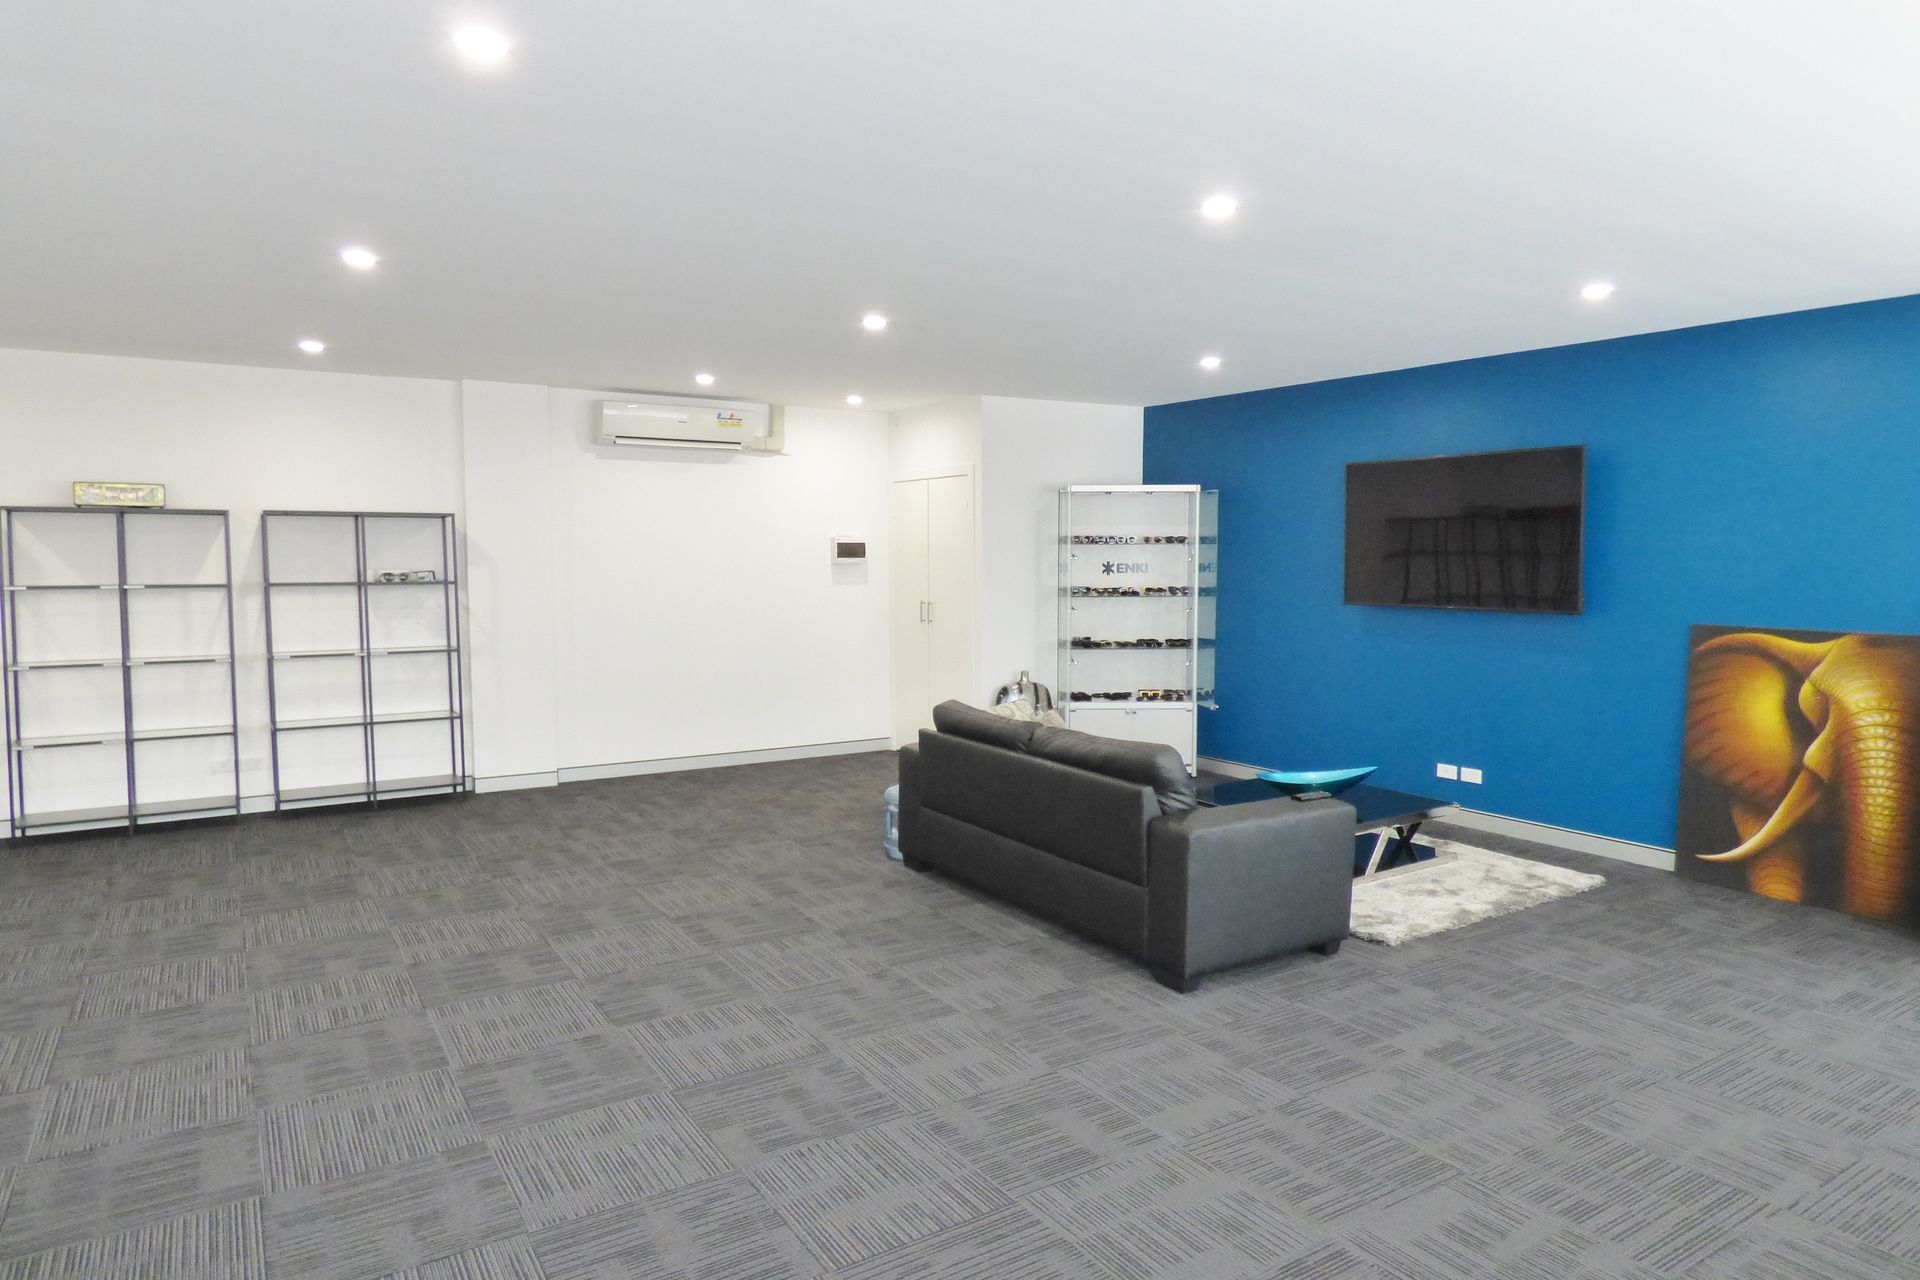 FULLY RENOVATED OFFICE SPACE IN CENTRAL CBD